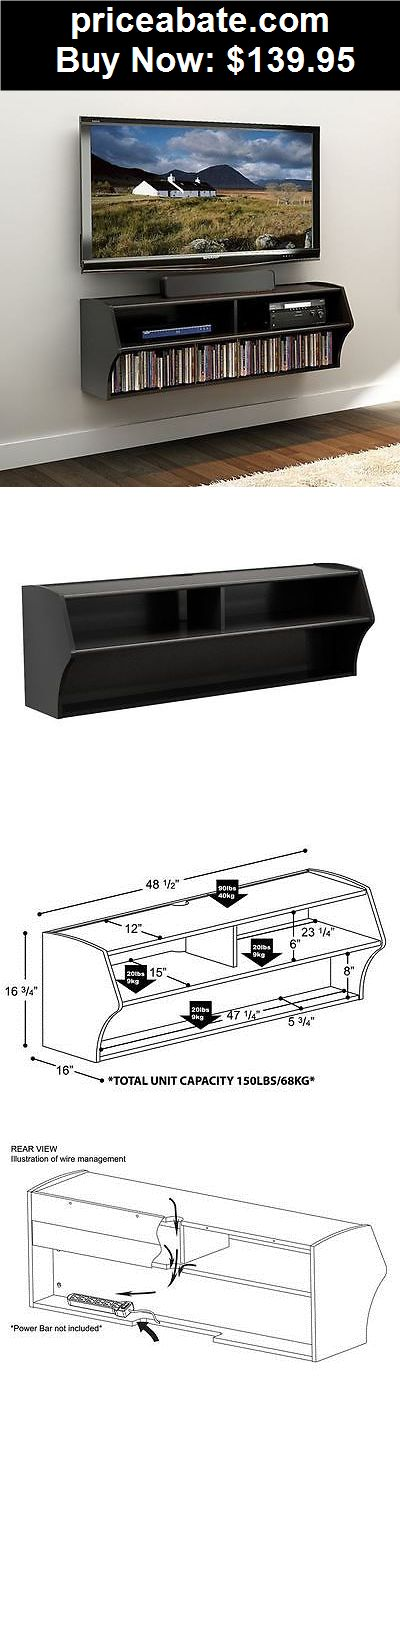 Furniture: TV Stand Wall Mount Floating Entertainment Center Television DVD Media Storage - BUY IT NOW ONLY $139.95